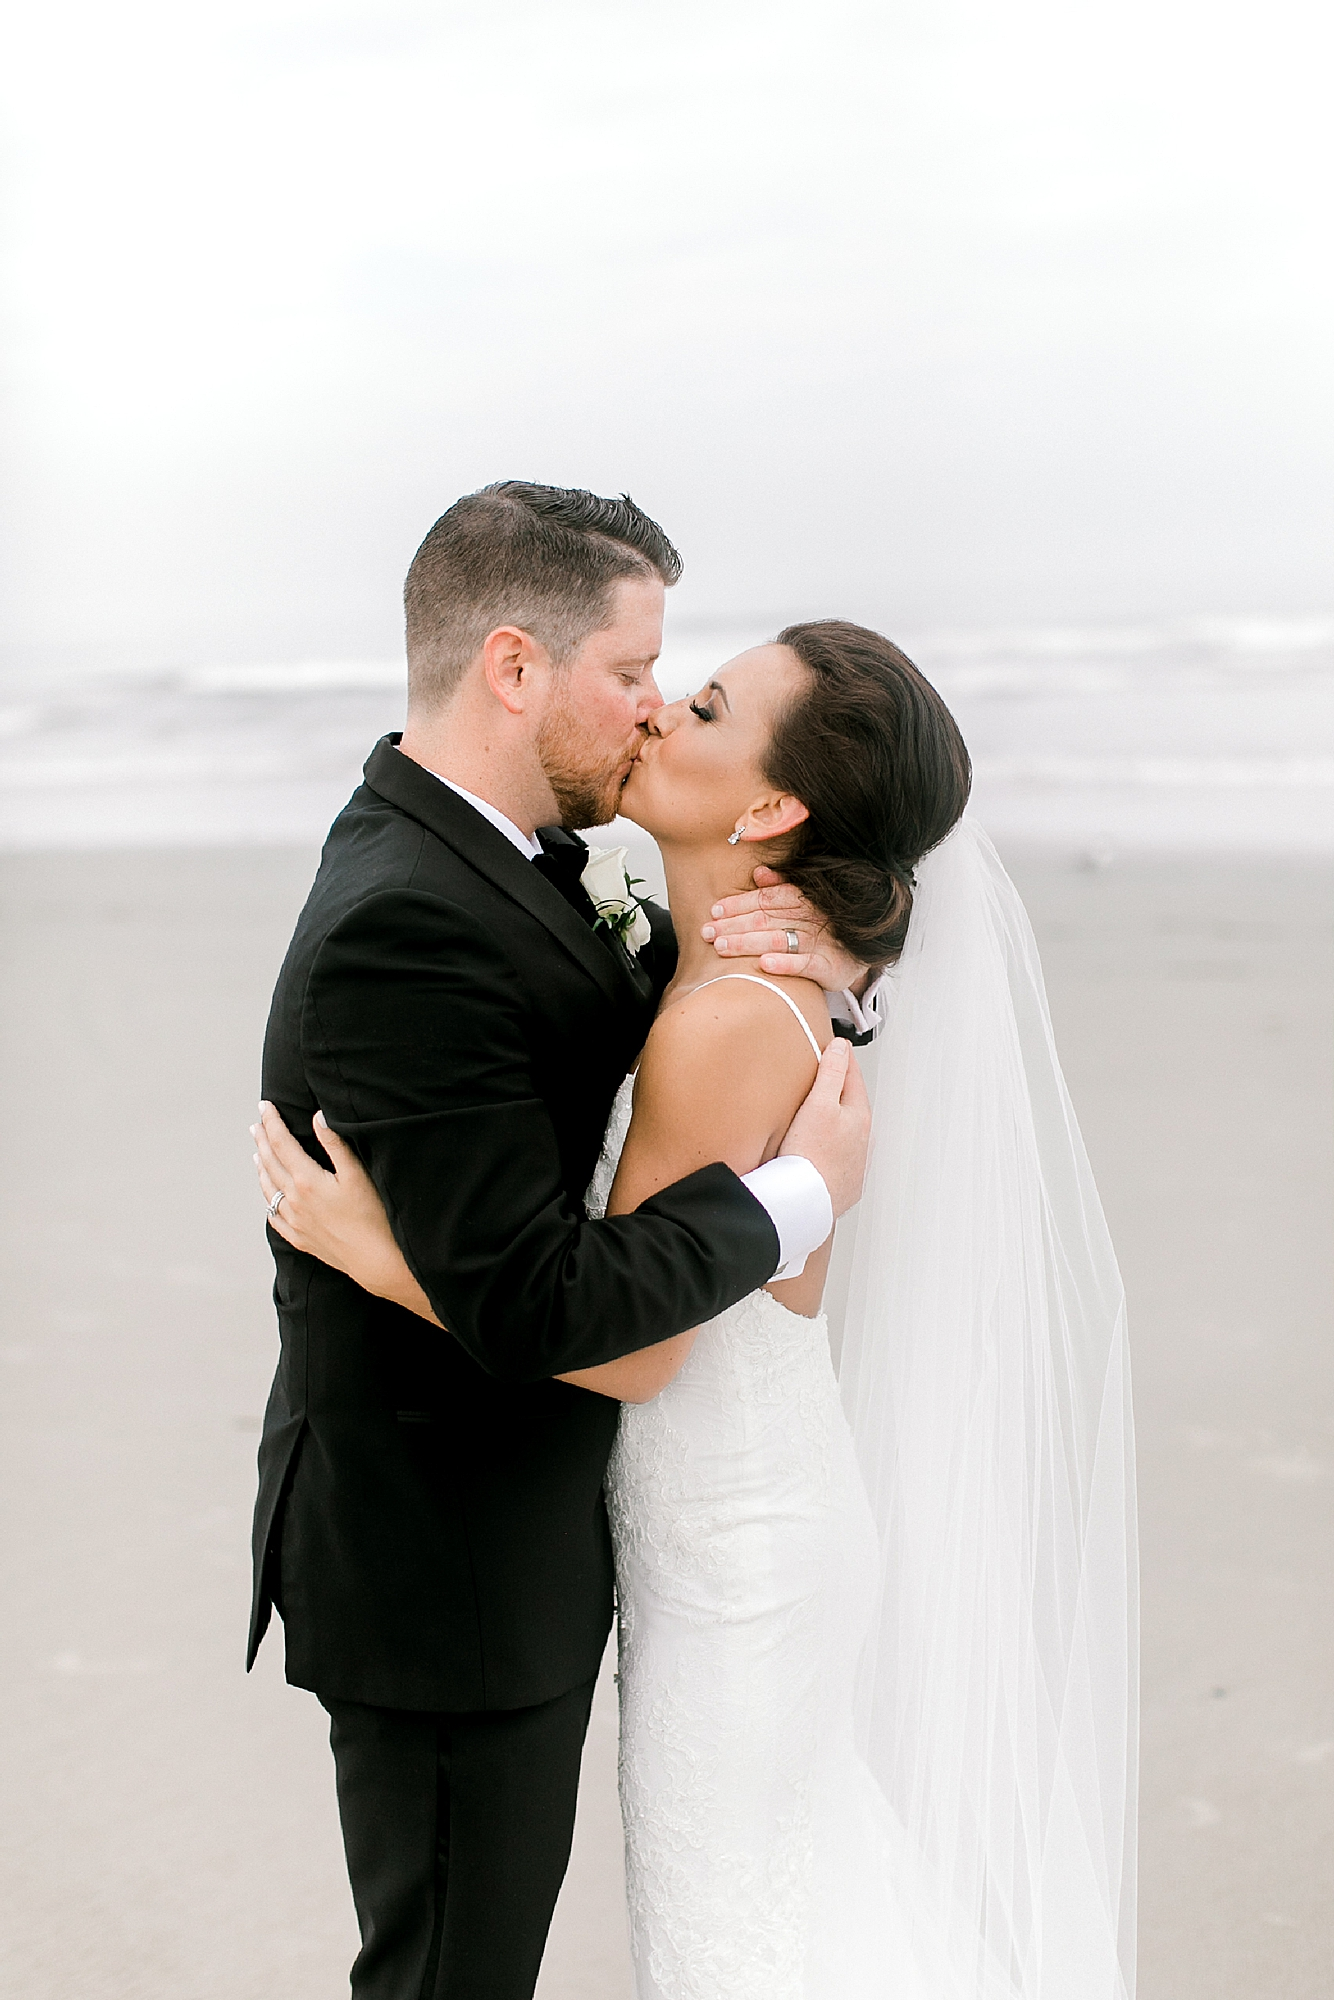 Candid and Stylish South Jersey Wedding Photography by Magdalena Studios 0051